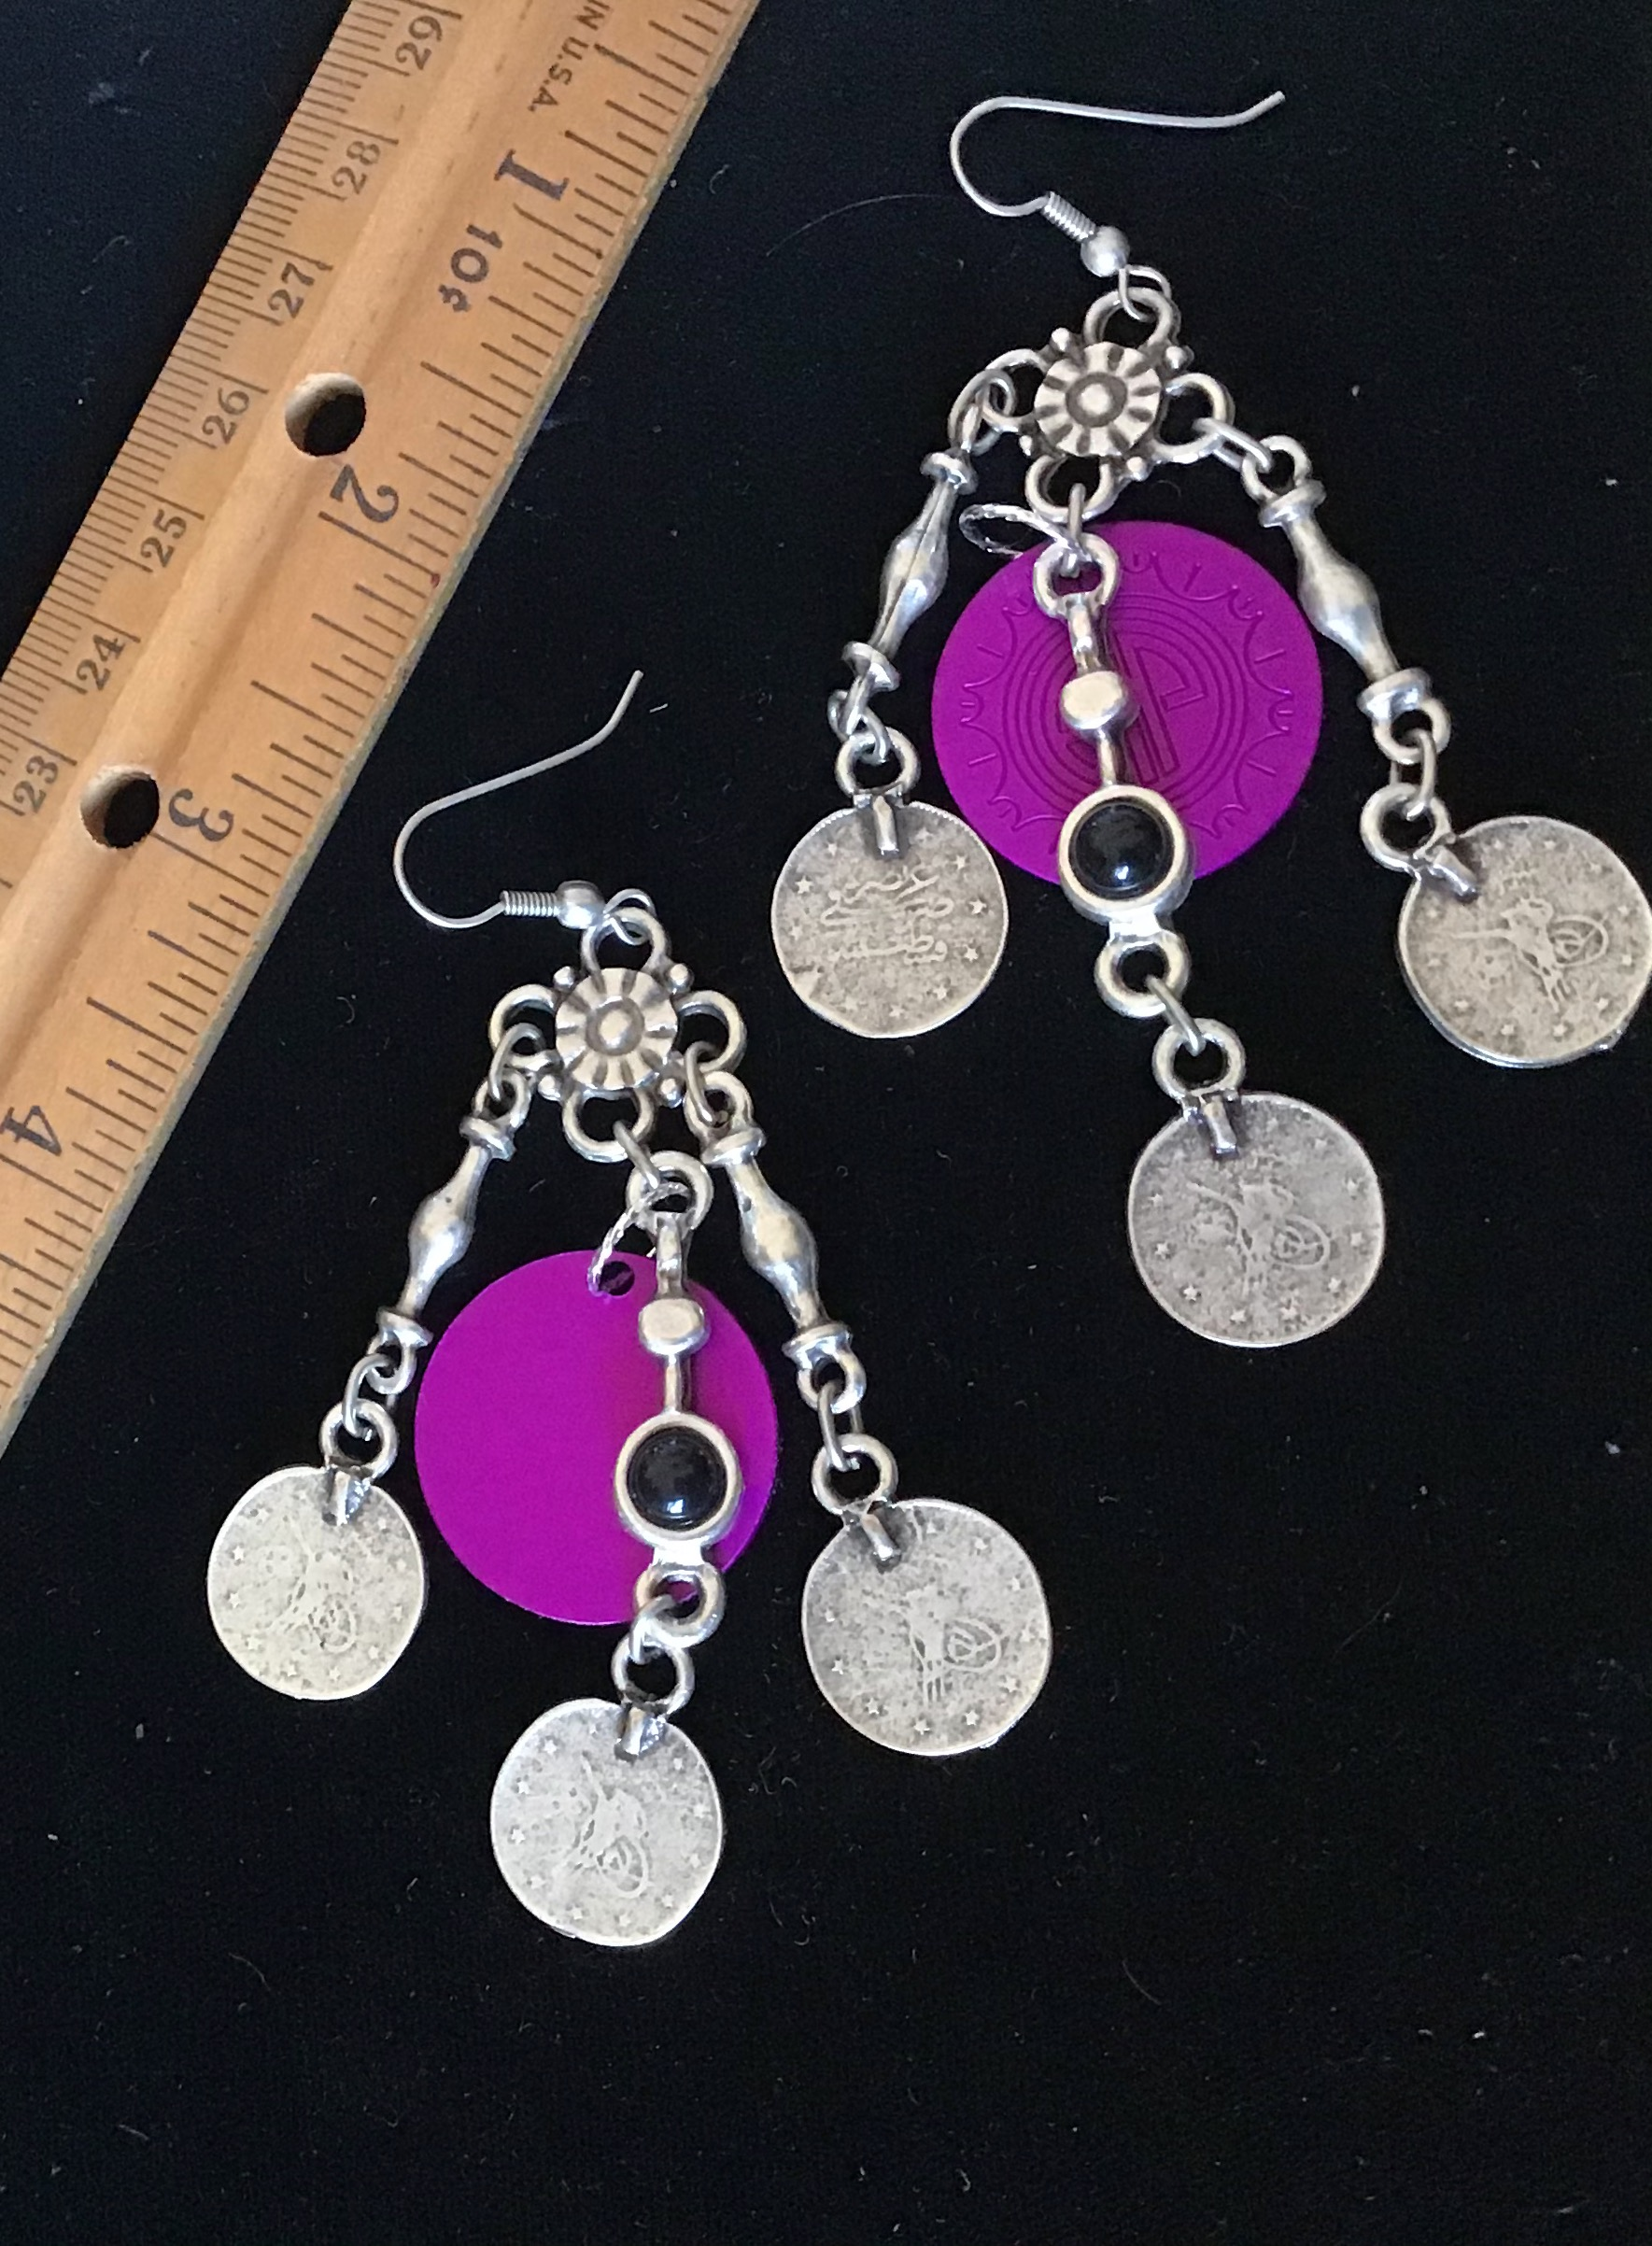 Dramatic Coins w/ Energy Disks Earrings